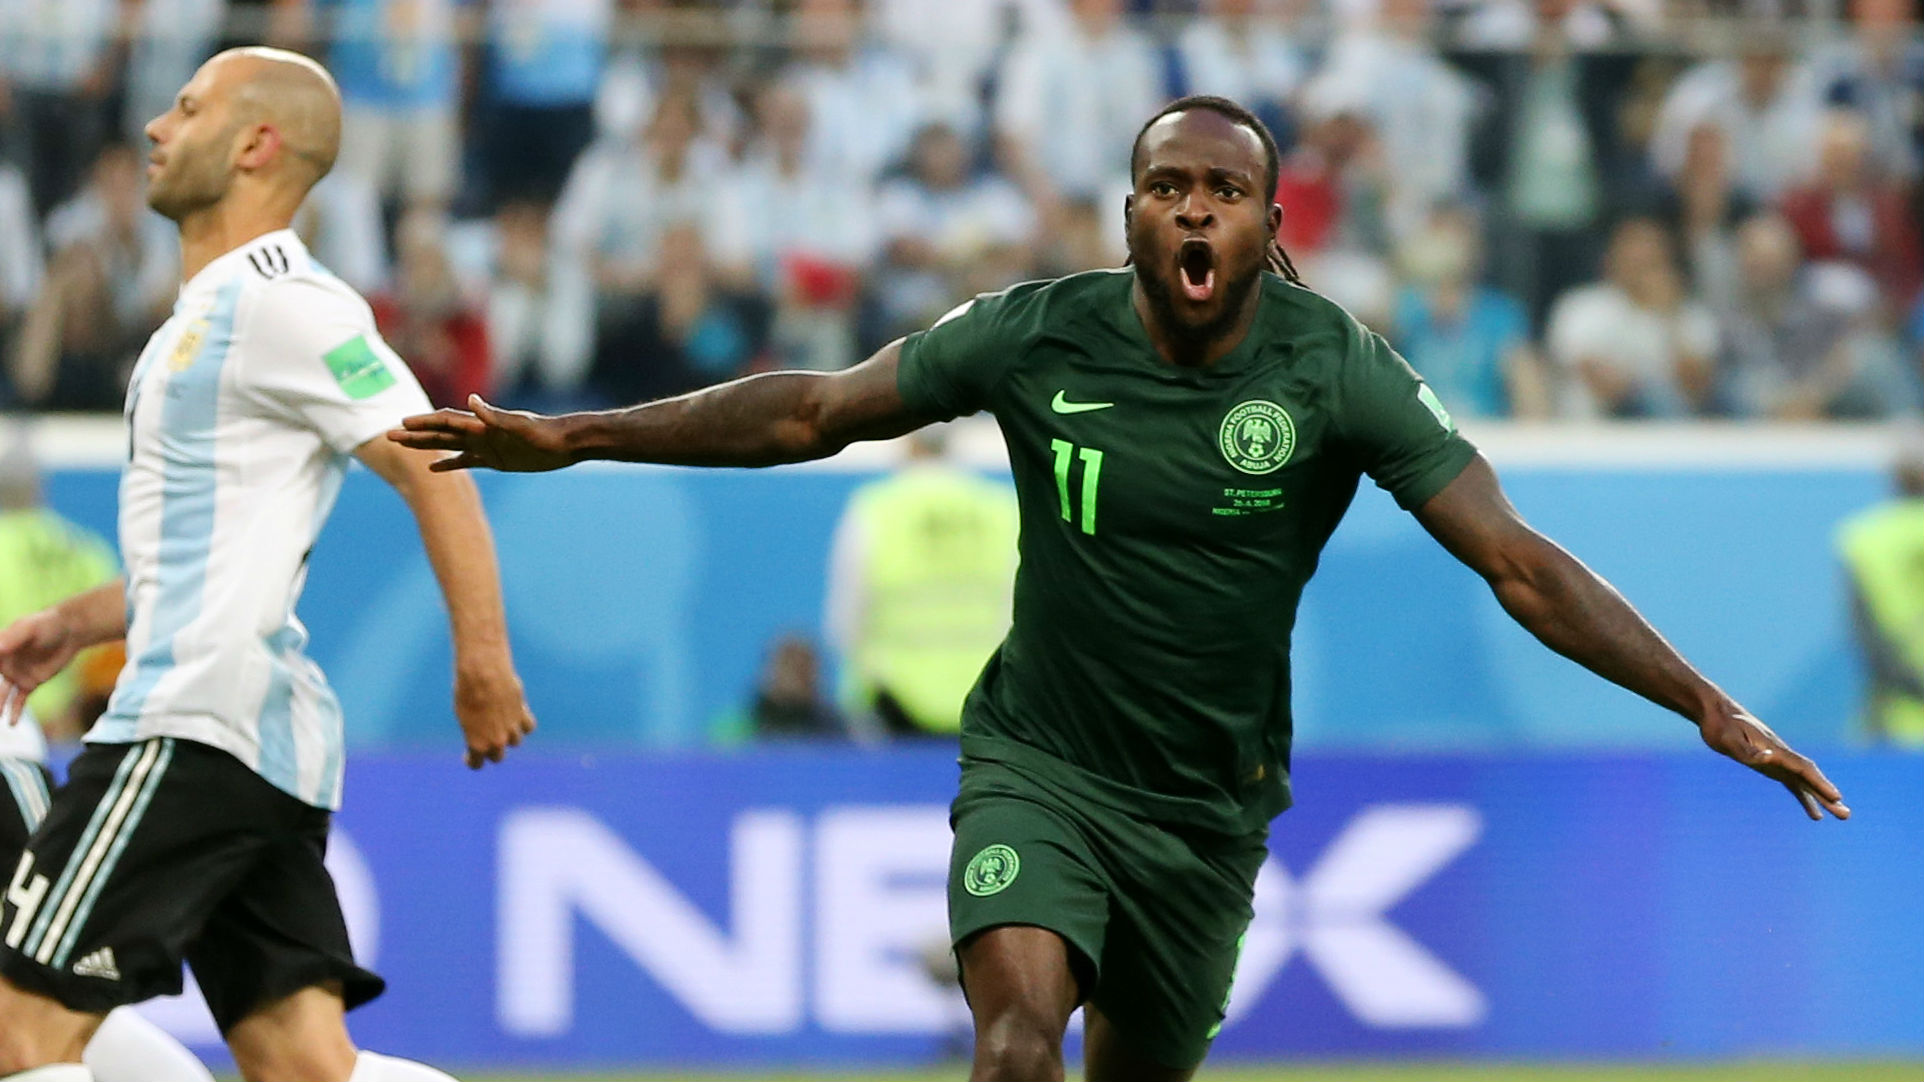 Shock as Nigeria star quits worldwide  football at 27